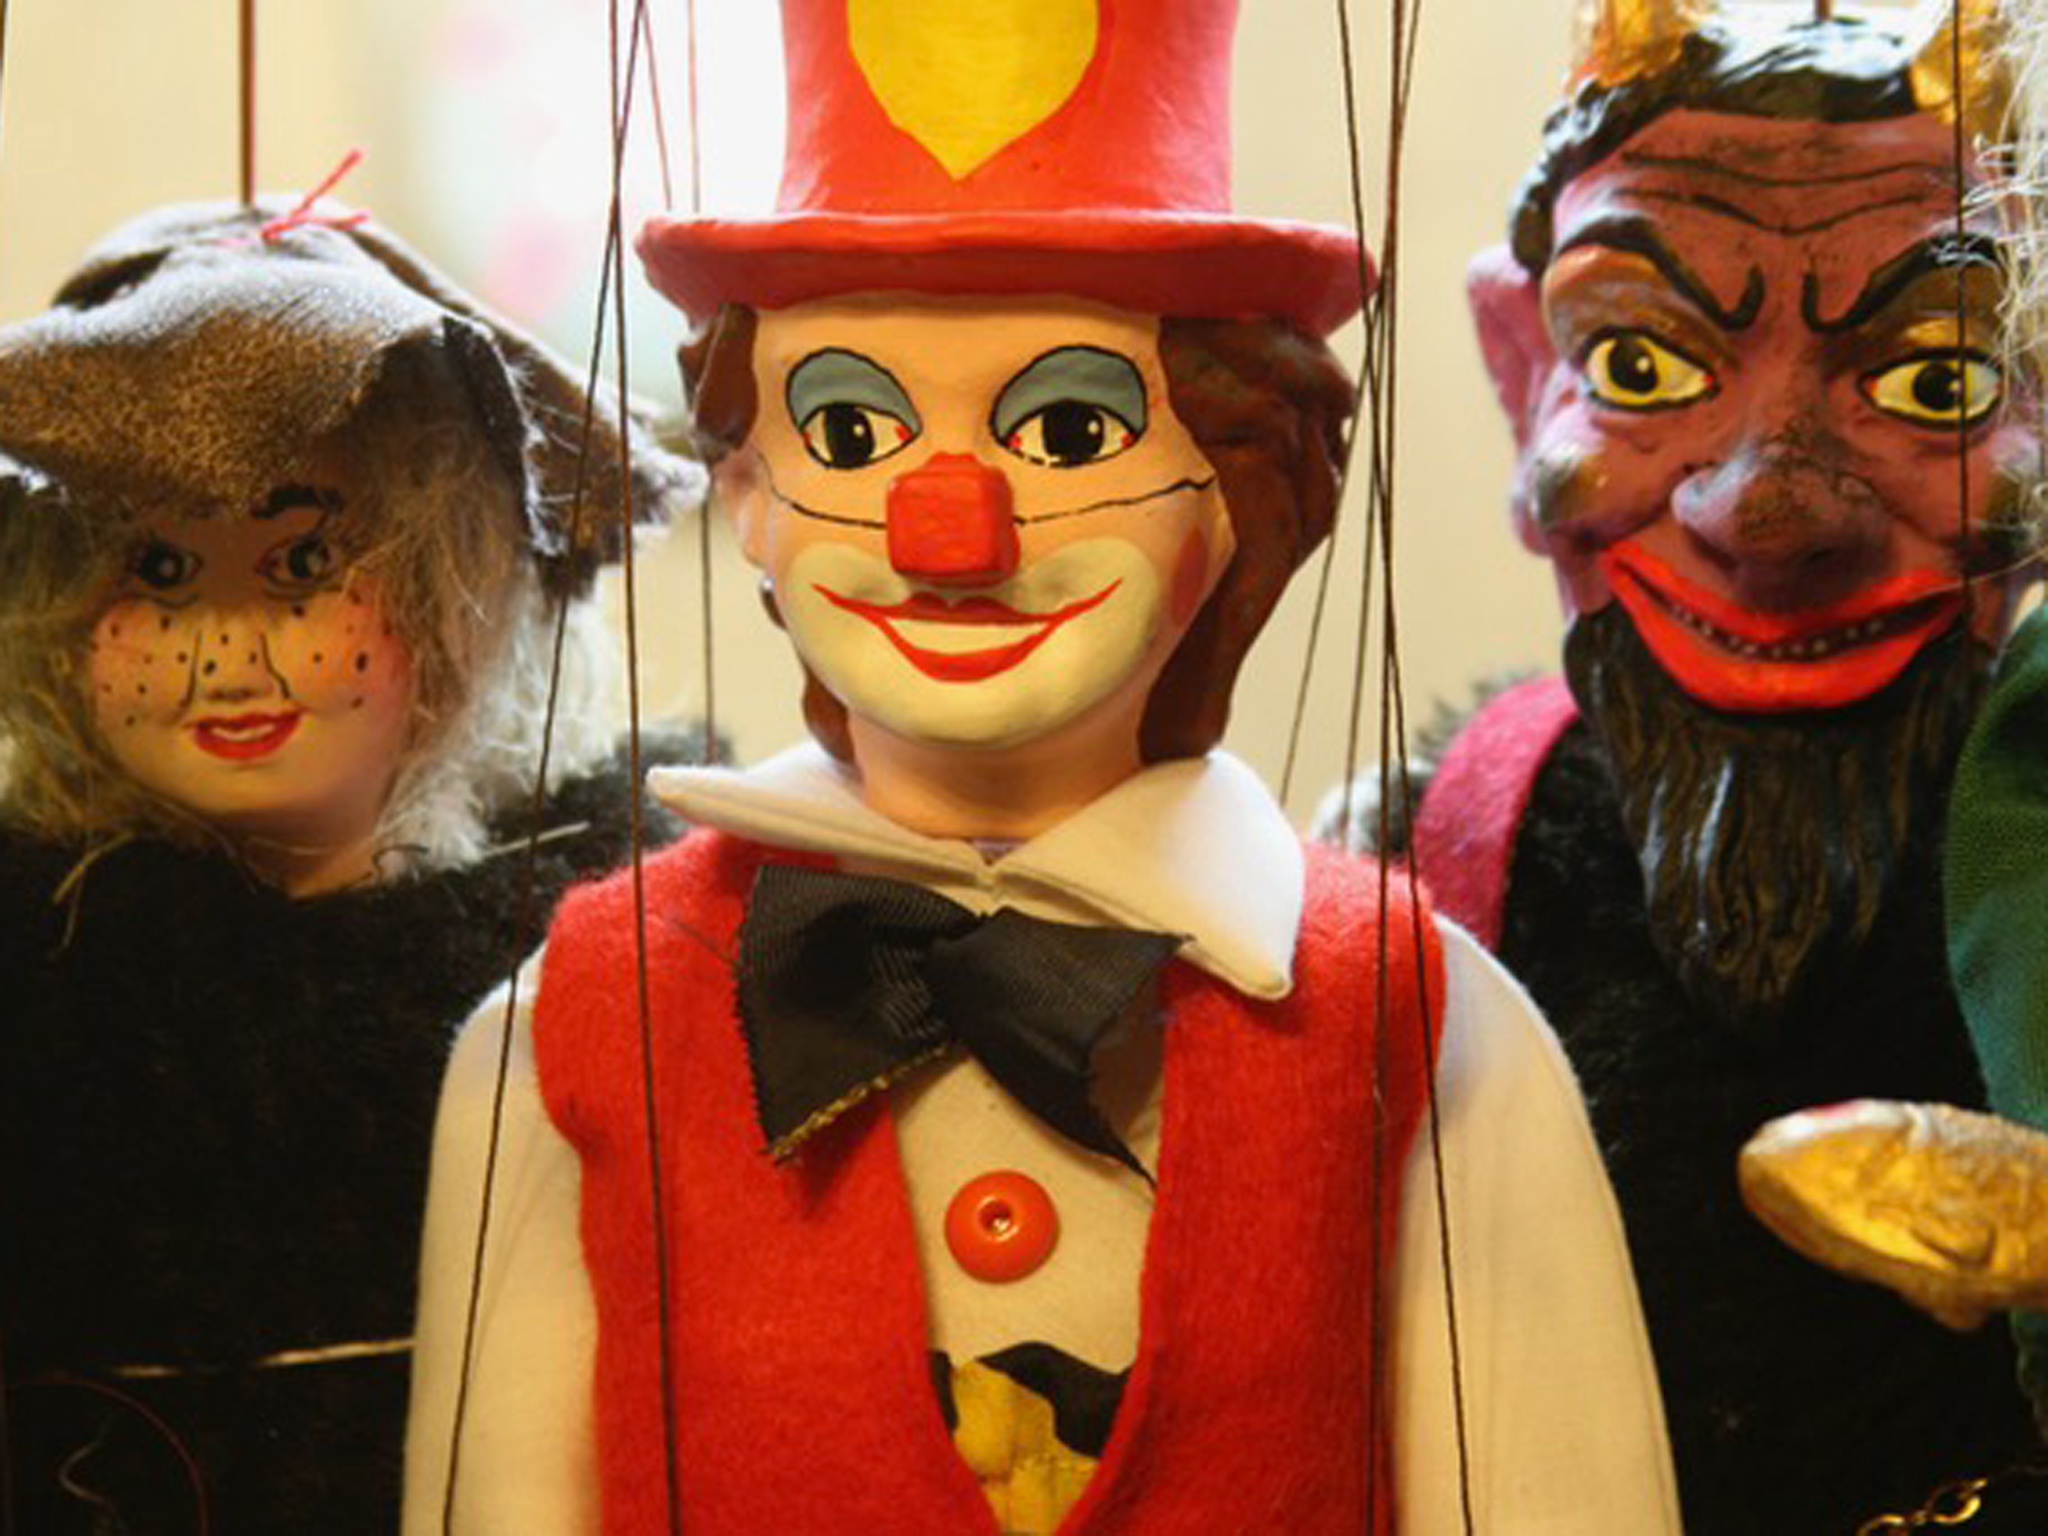 String puppets at Rocking Horse Toy Shop